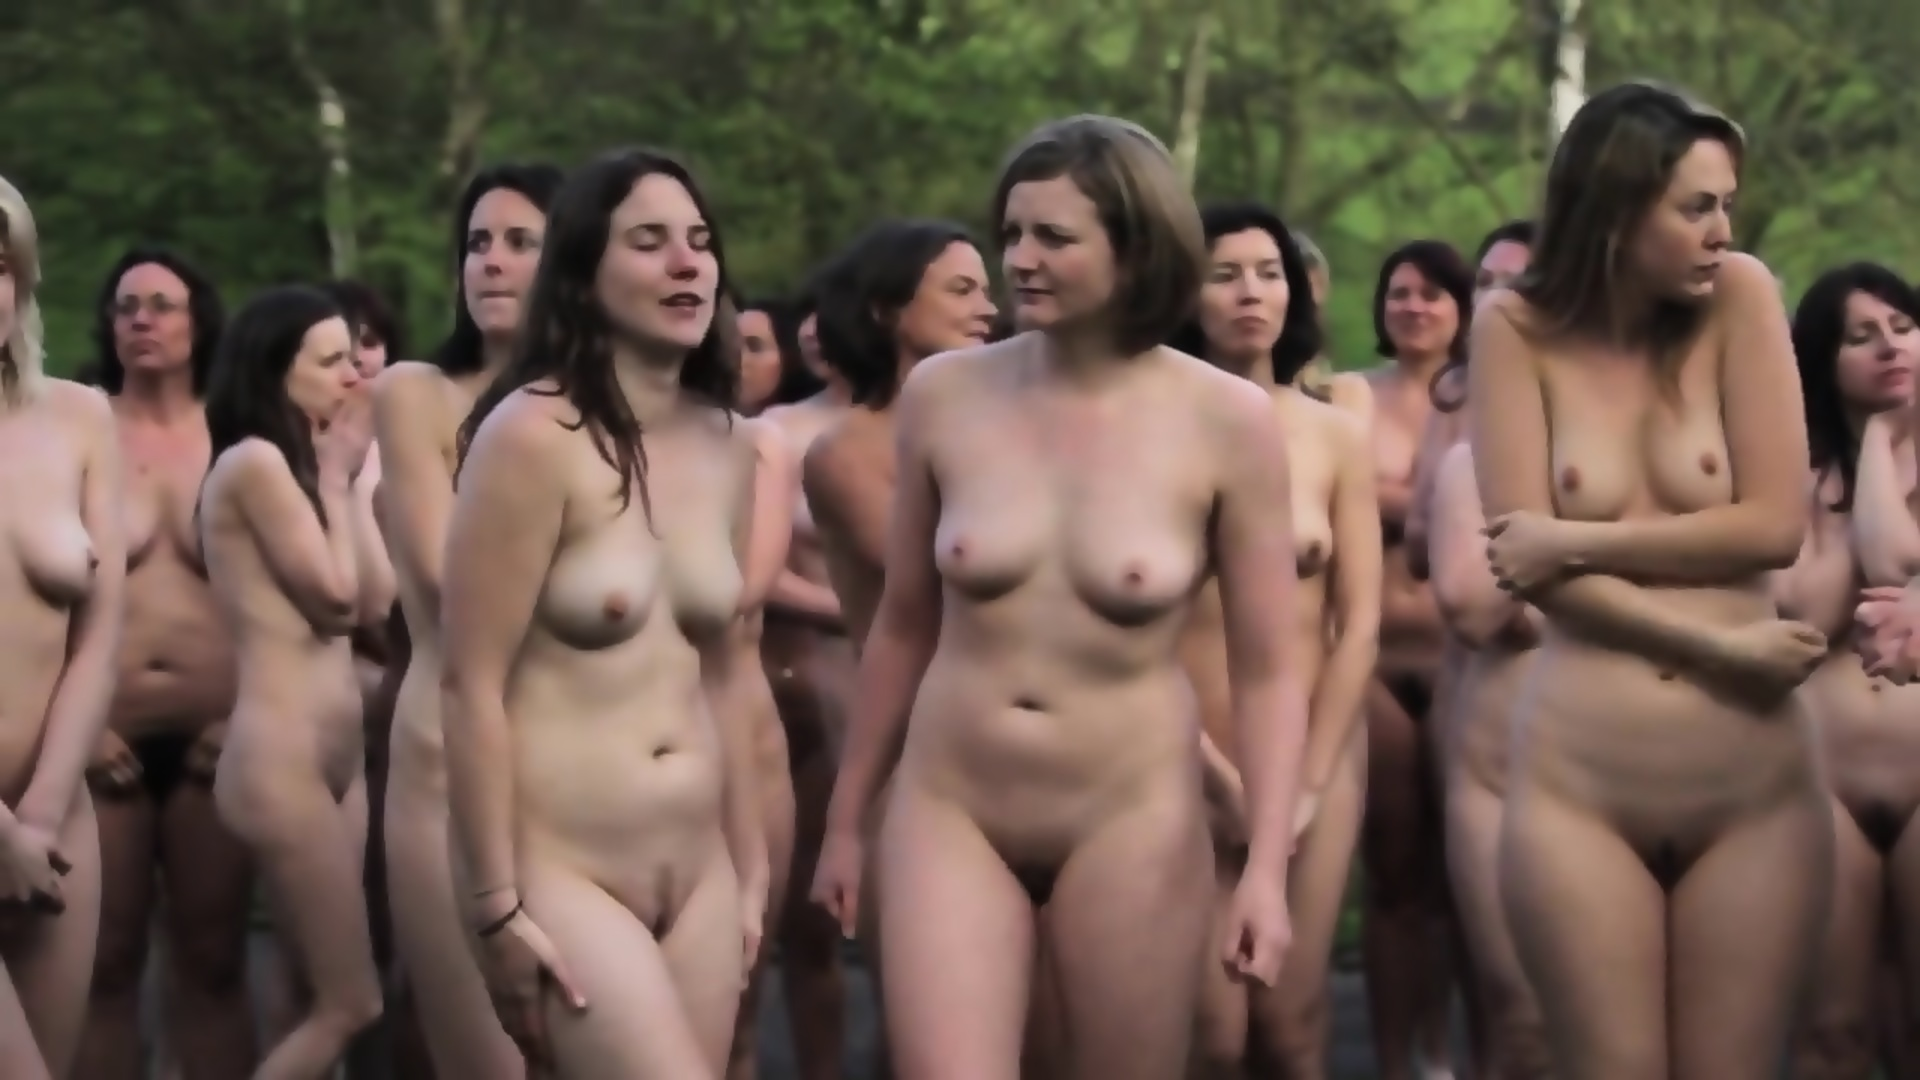 Nude British women groups - EPORNER